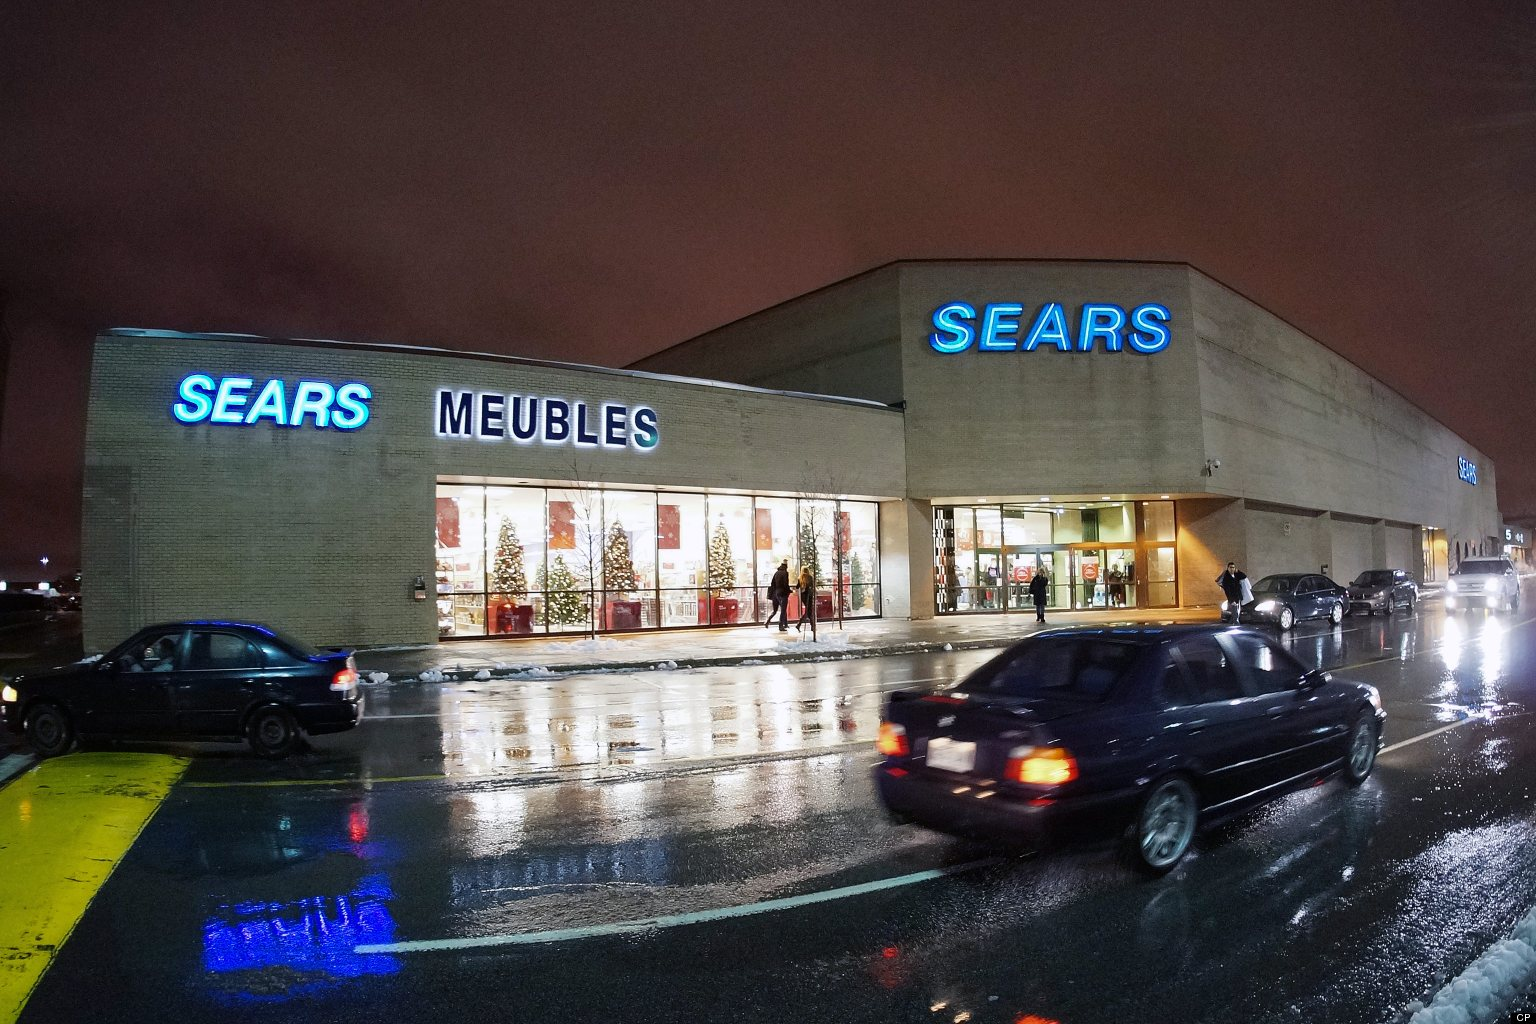 More than 64 years ago, Sears Canada (Simpsons-Sears at the time) opened its first store in Stratford, Ont., and then went on to play a dominant role in the Canadian department store market.